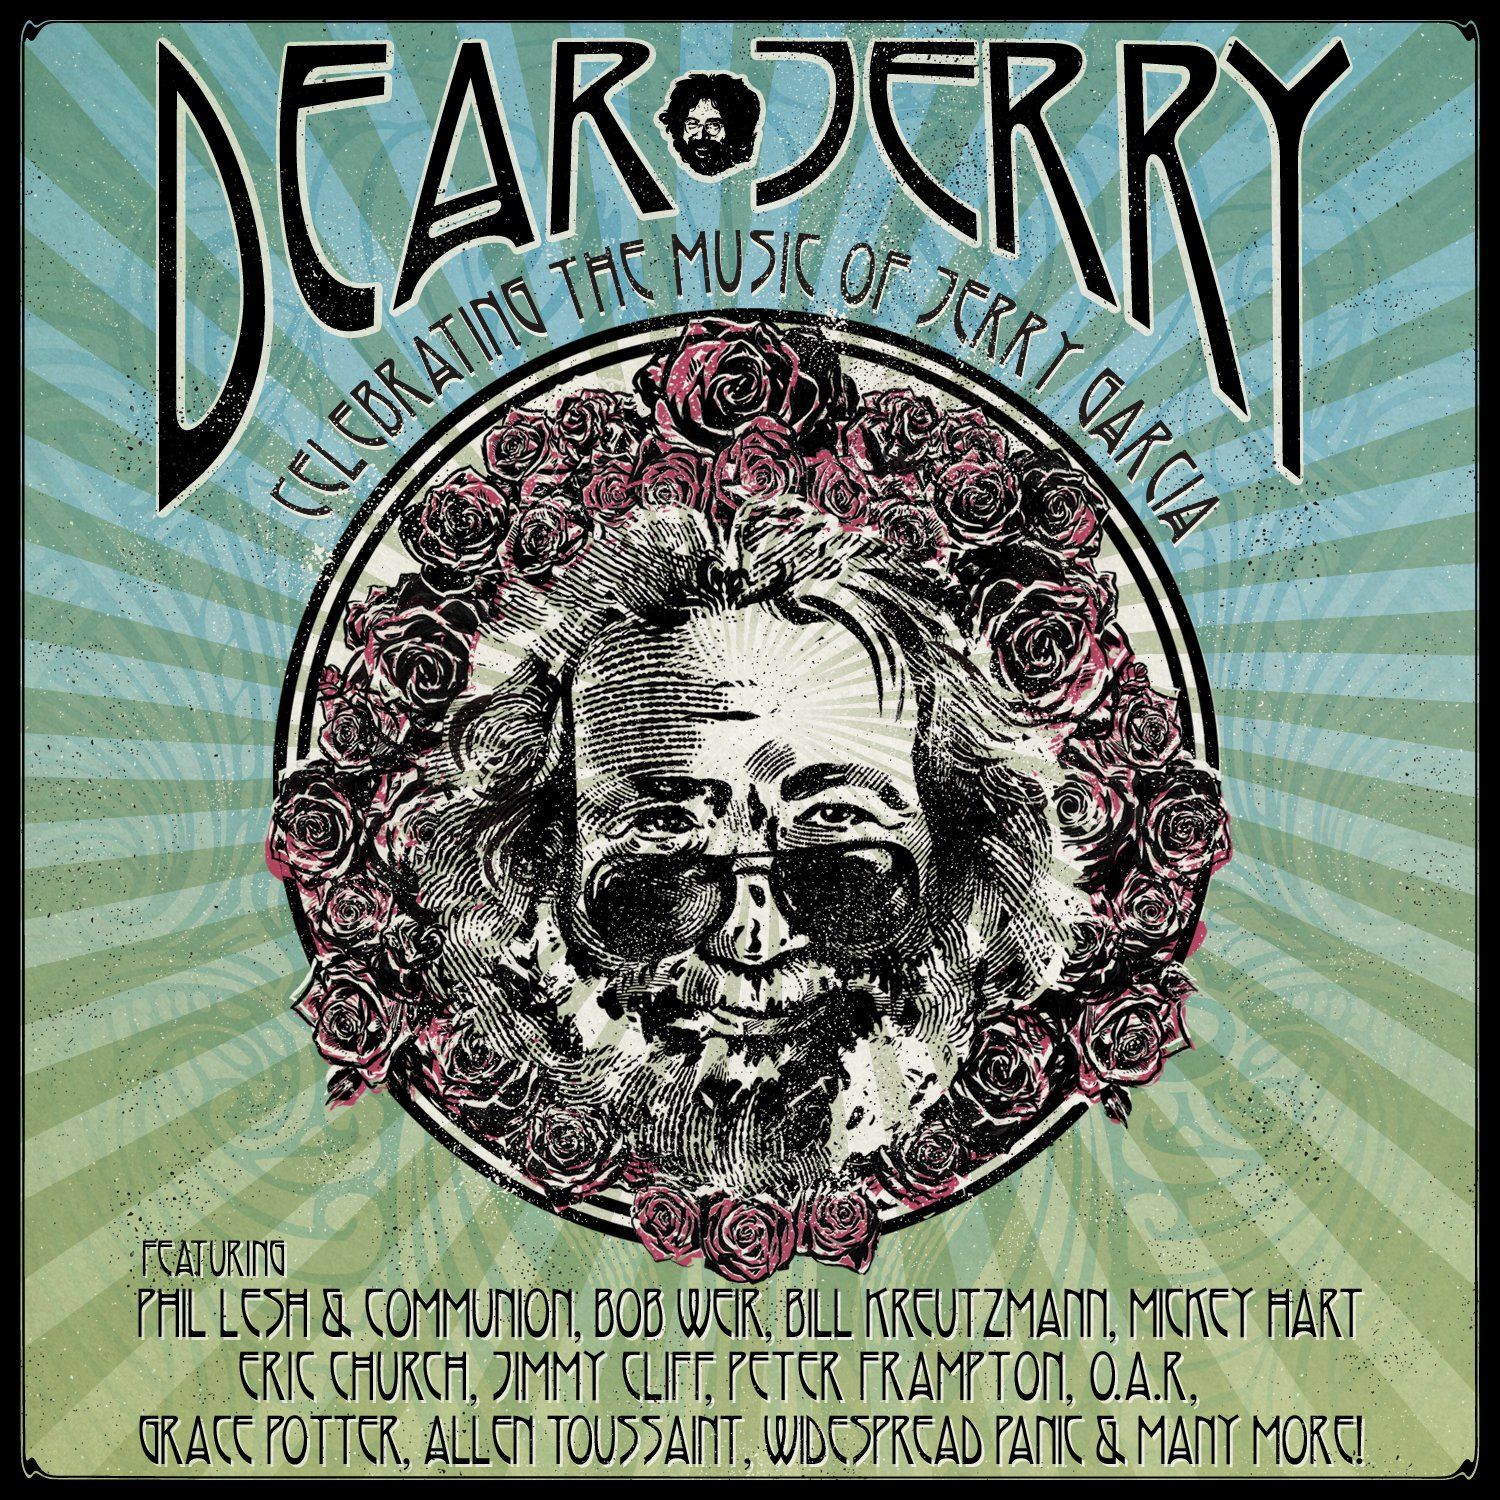 Dear Jerry: Celebrating The Free shipping / New Music High quality new Jerry Blu-Ray Of Garcia